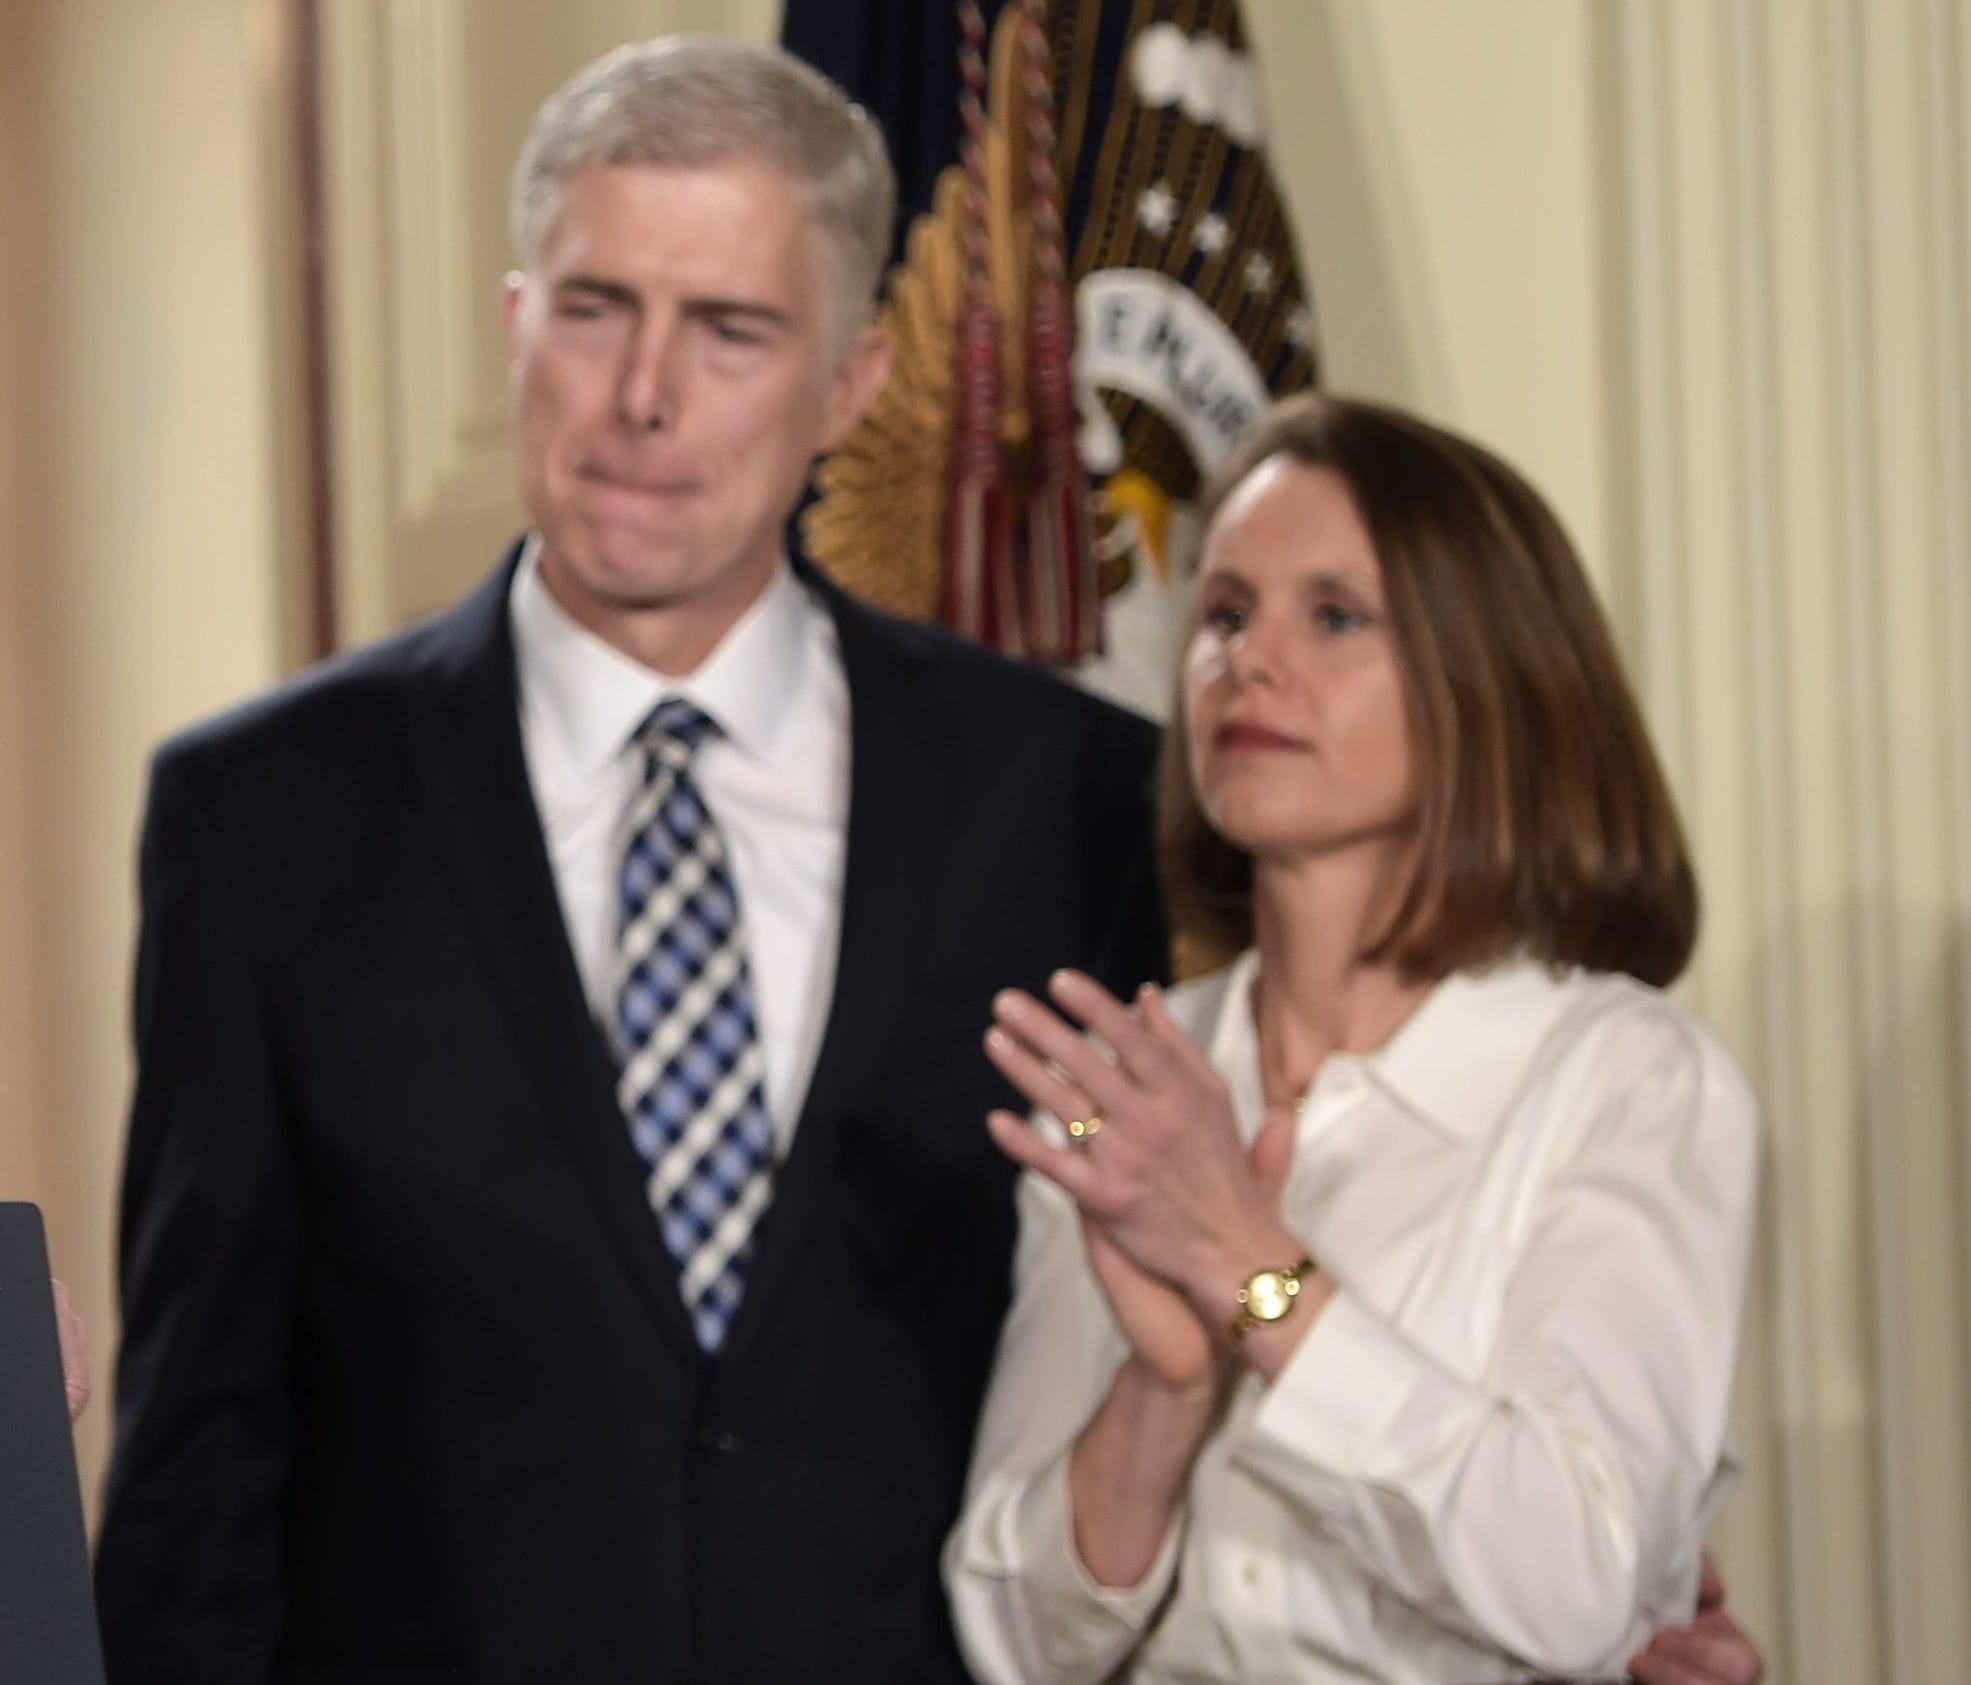 Judge Neil Gorsuch and his wife Marie Louise look on, after President Trump nominated him for the Supreme Court, at the White House on Jan. 31.